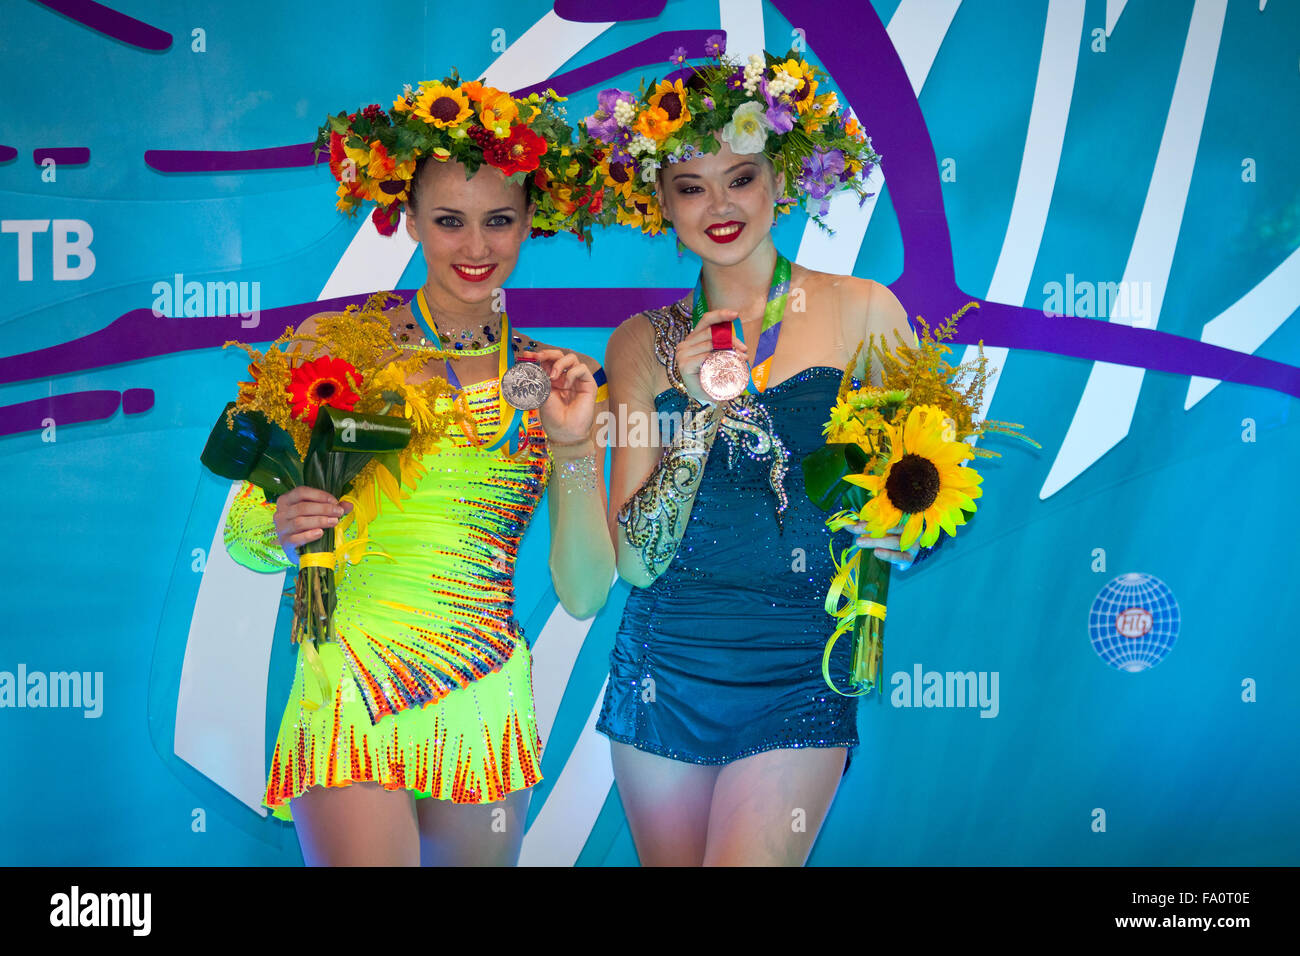 KYIV, UKRAINE - AUGUST 29, 2013: Ganna Rizatdinova (L) and Alina Maksymenko of Ukraine - medallists of 32nd Rhythmic - Stock Image